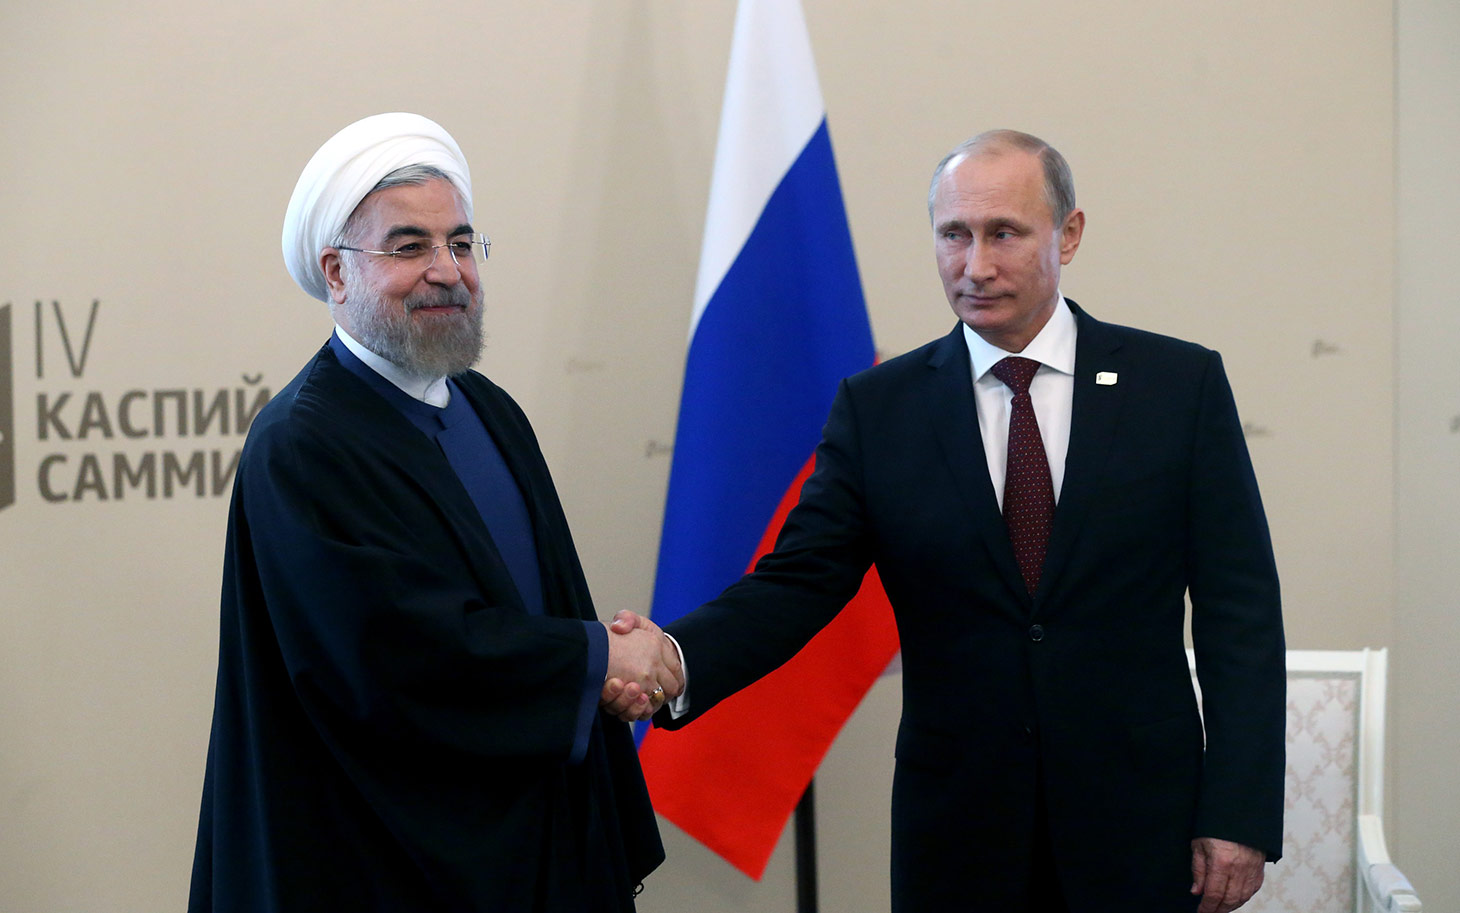 http://russia-insider.com/sites/insider/files/Iran_Russia_041315.jpg